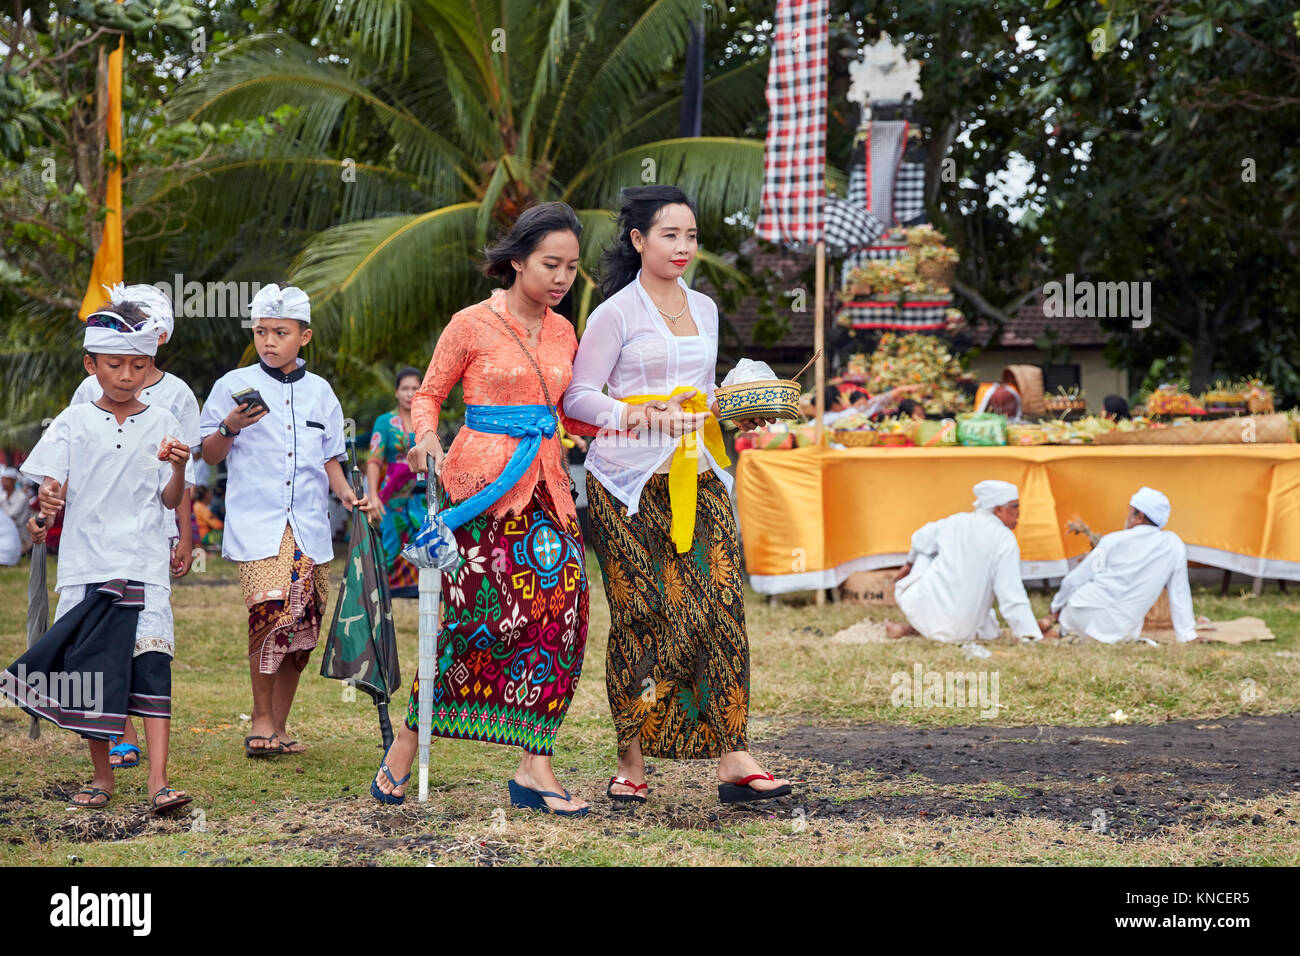 Women With Children Wearing Traditional Balinese Clothing Go To A